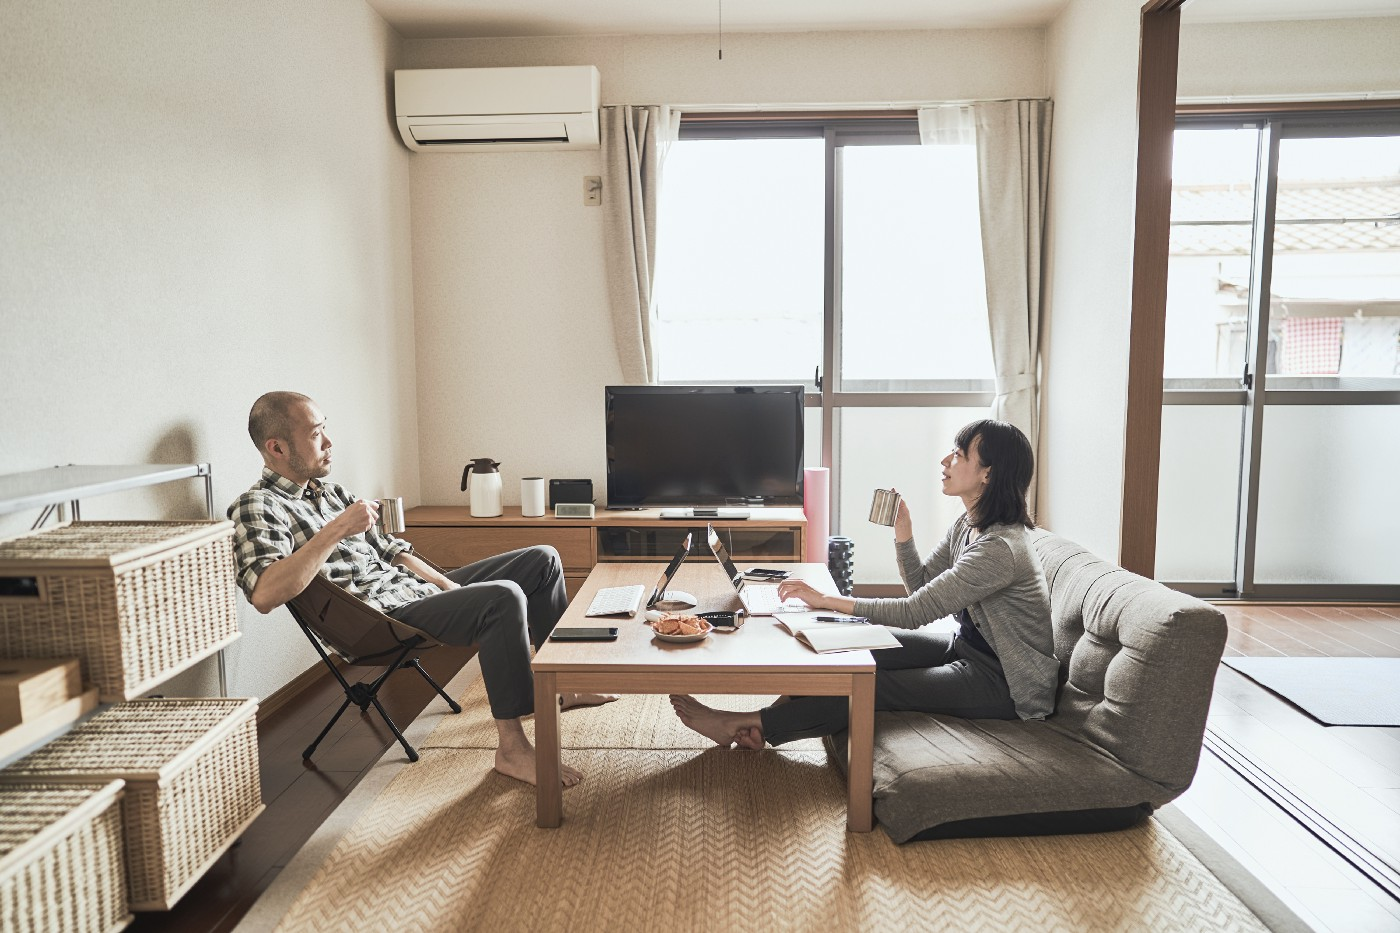 A couple sits on opposite sides of a coffee table, working on their laptops together at home.